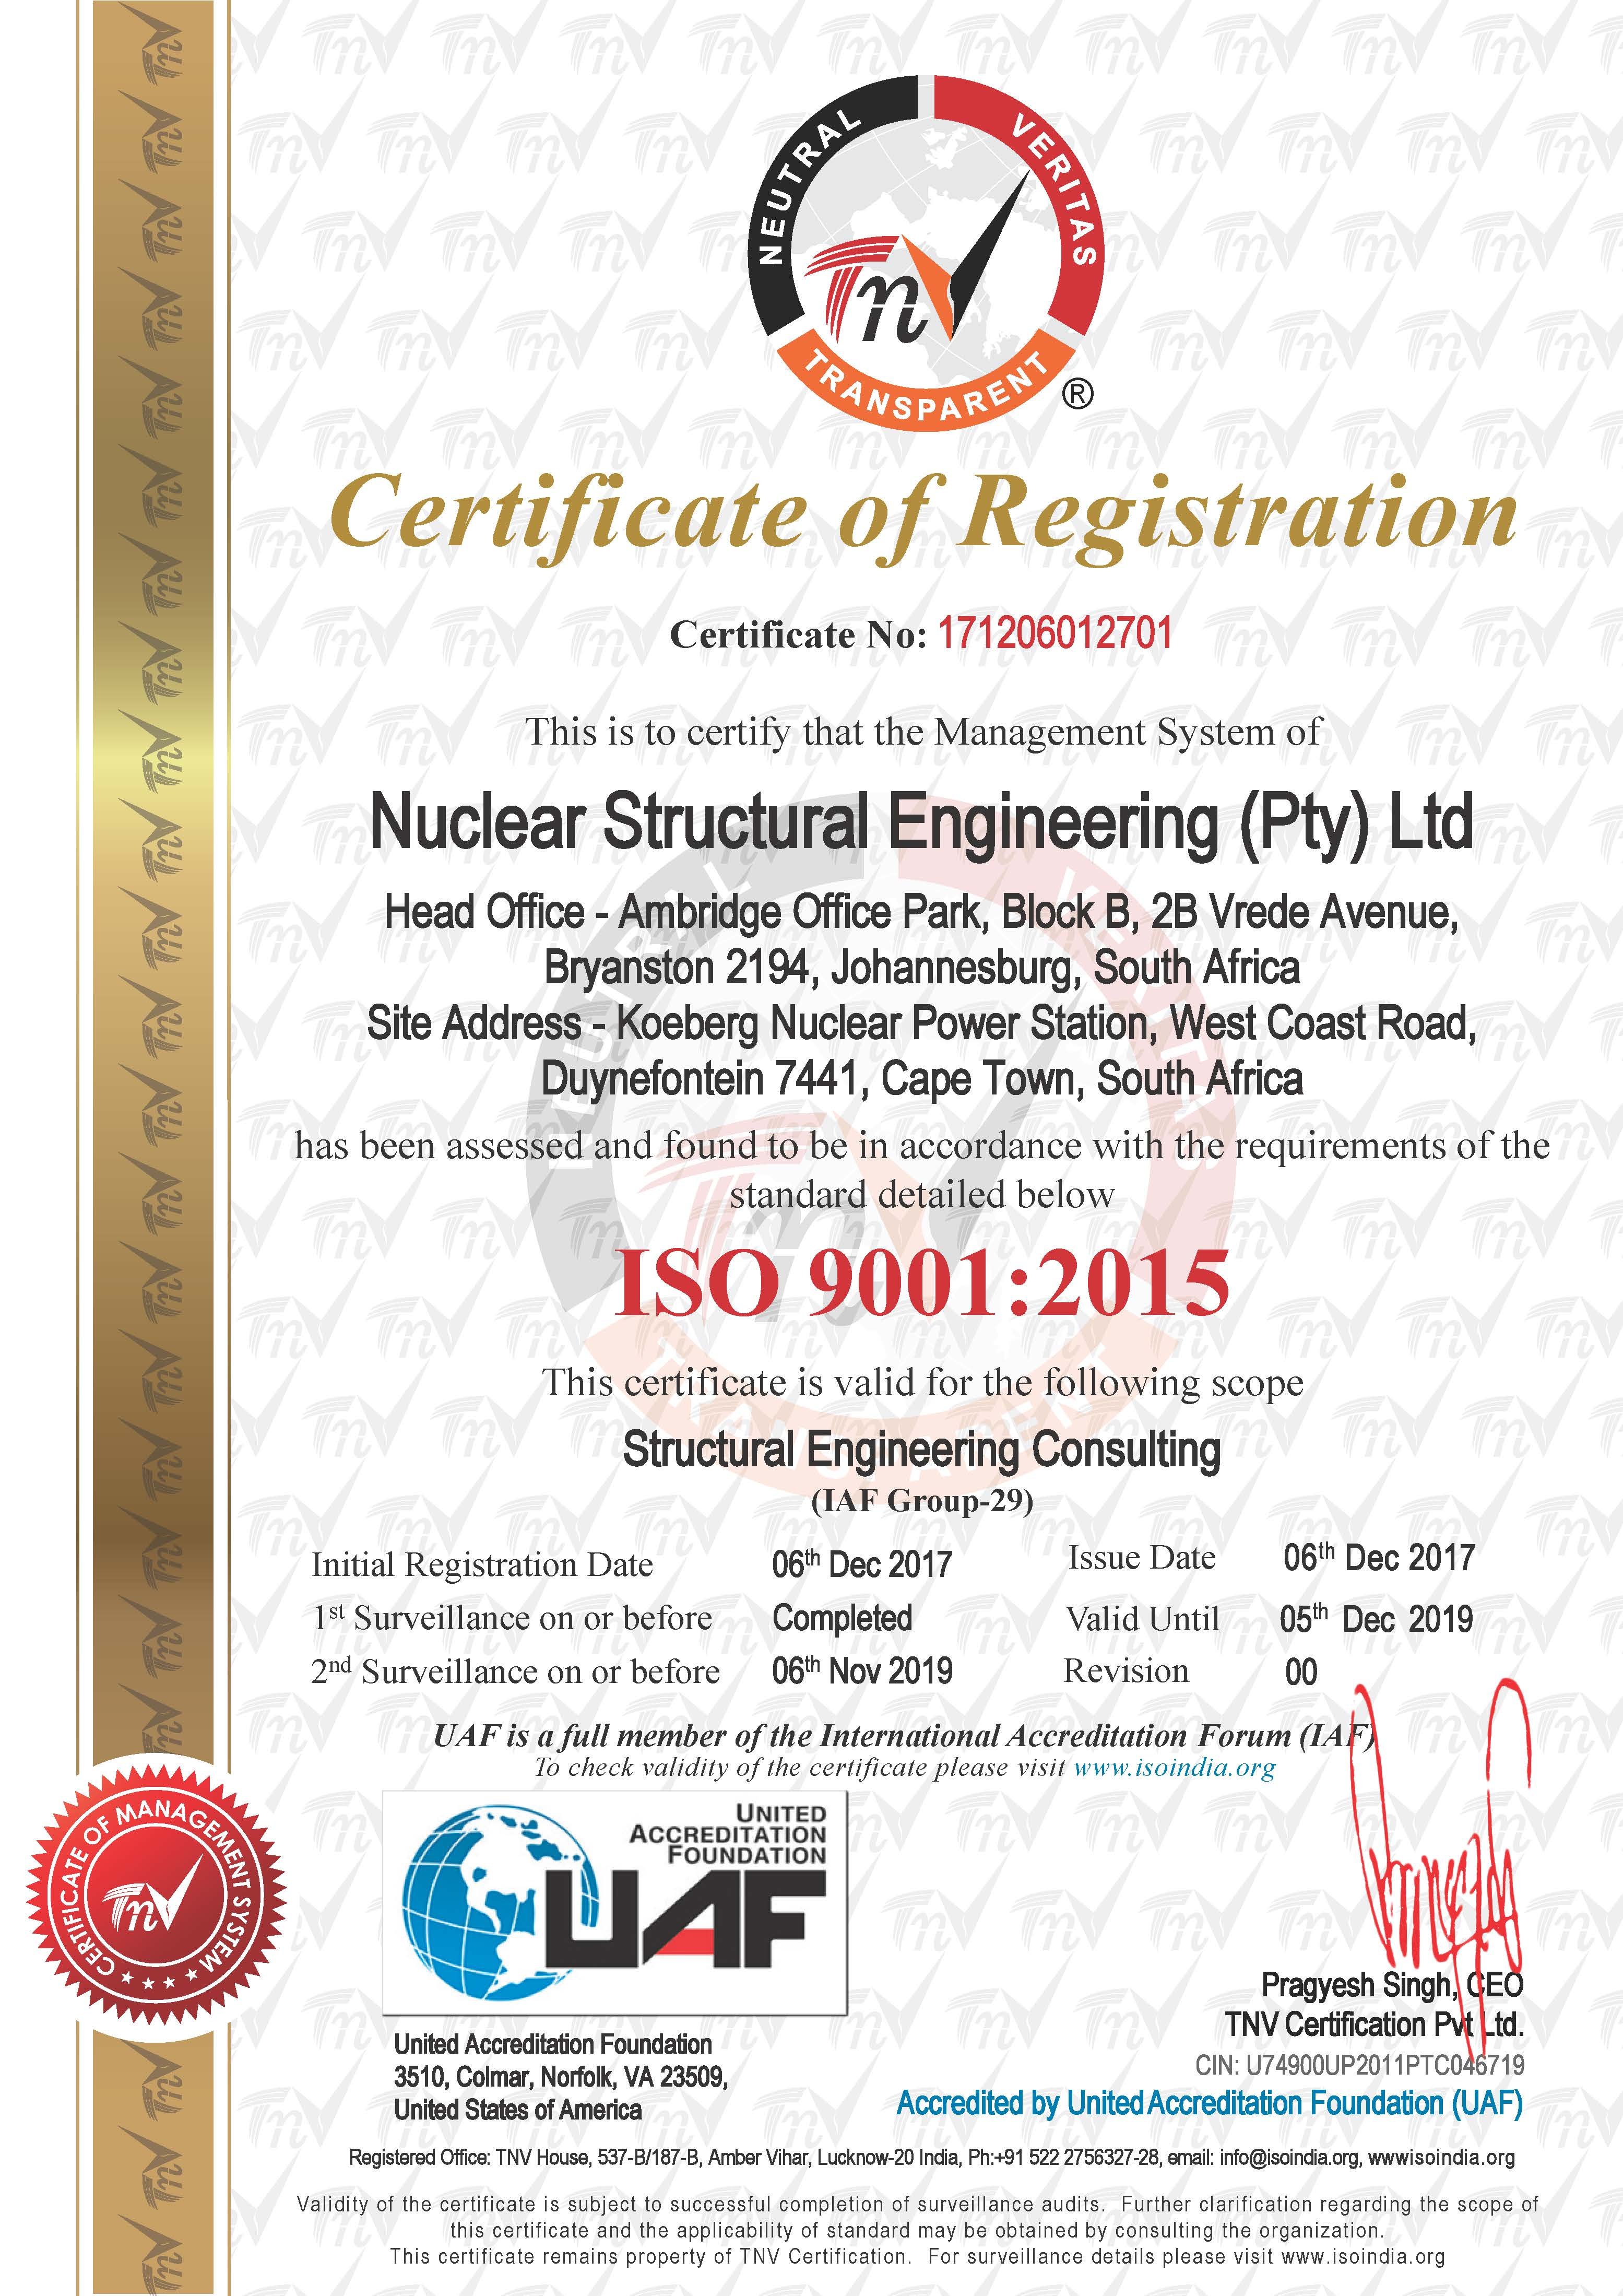 Nuclear Structural Engineering ISO